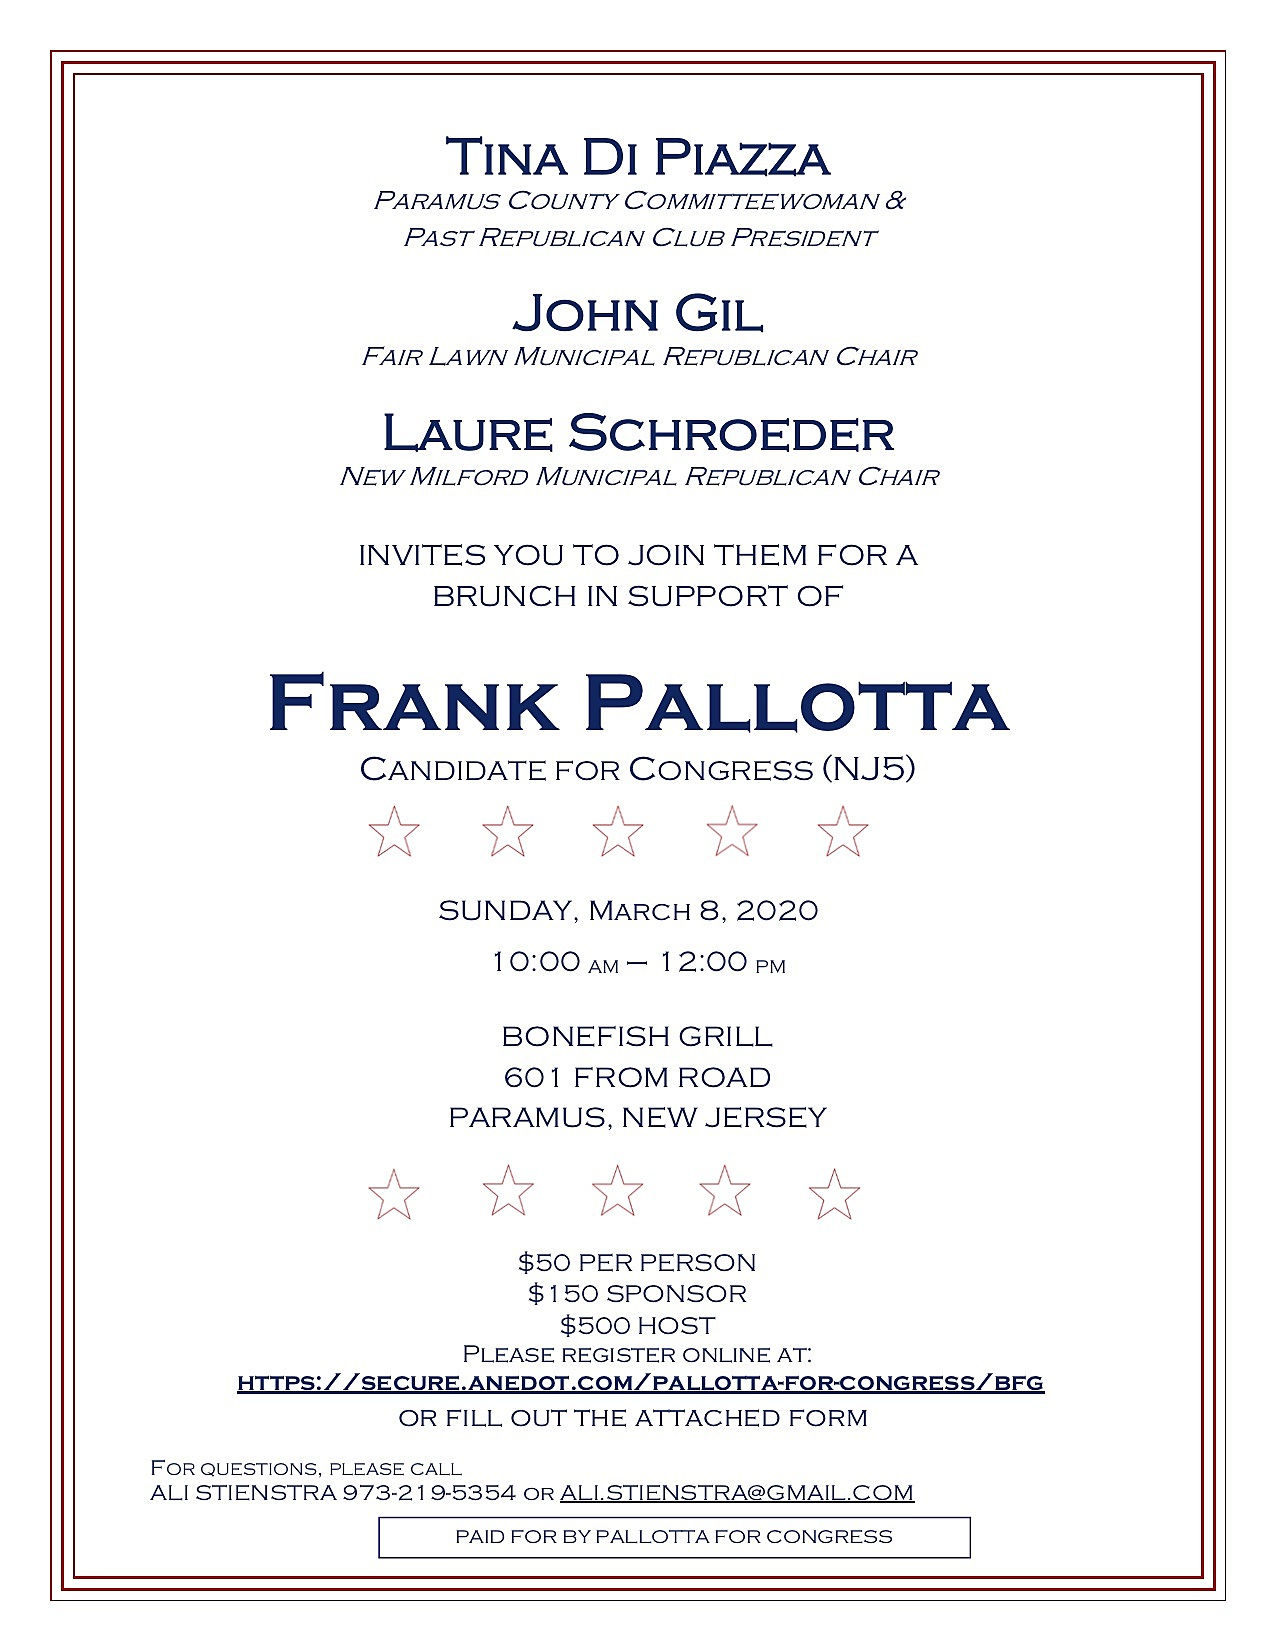 Pallotta for Congress: Bonefish